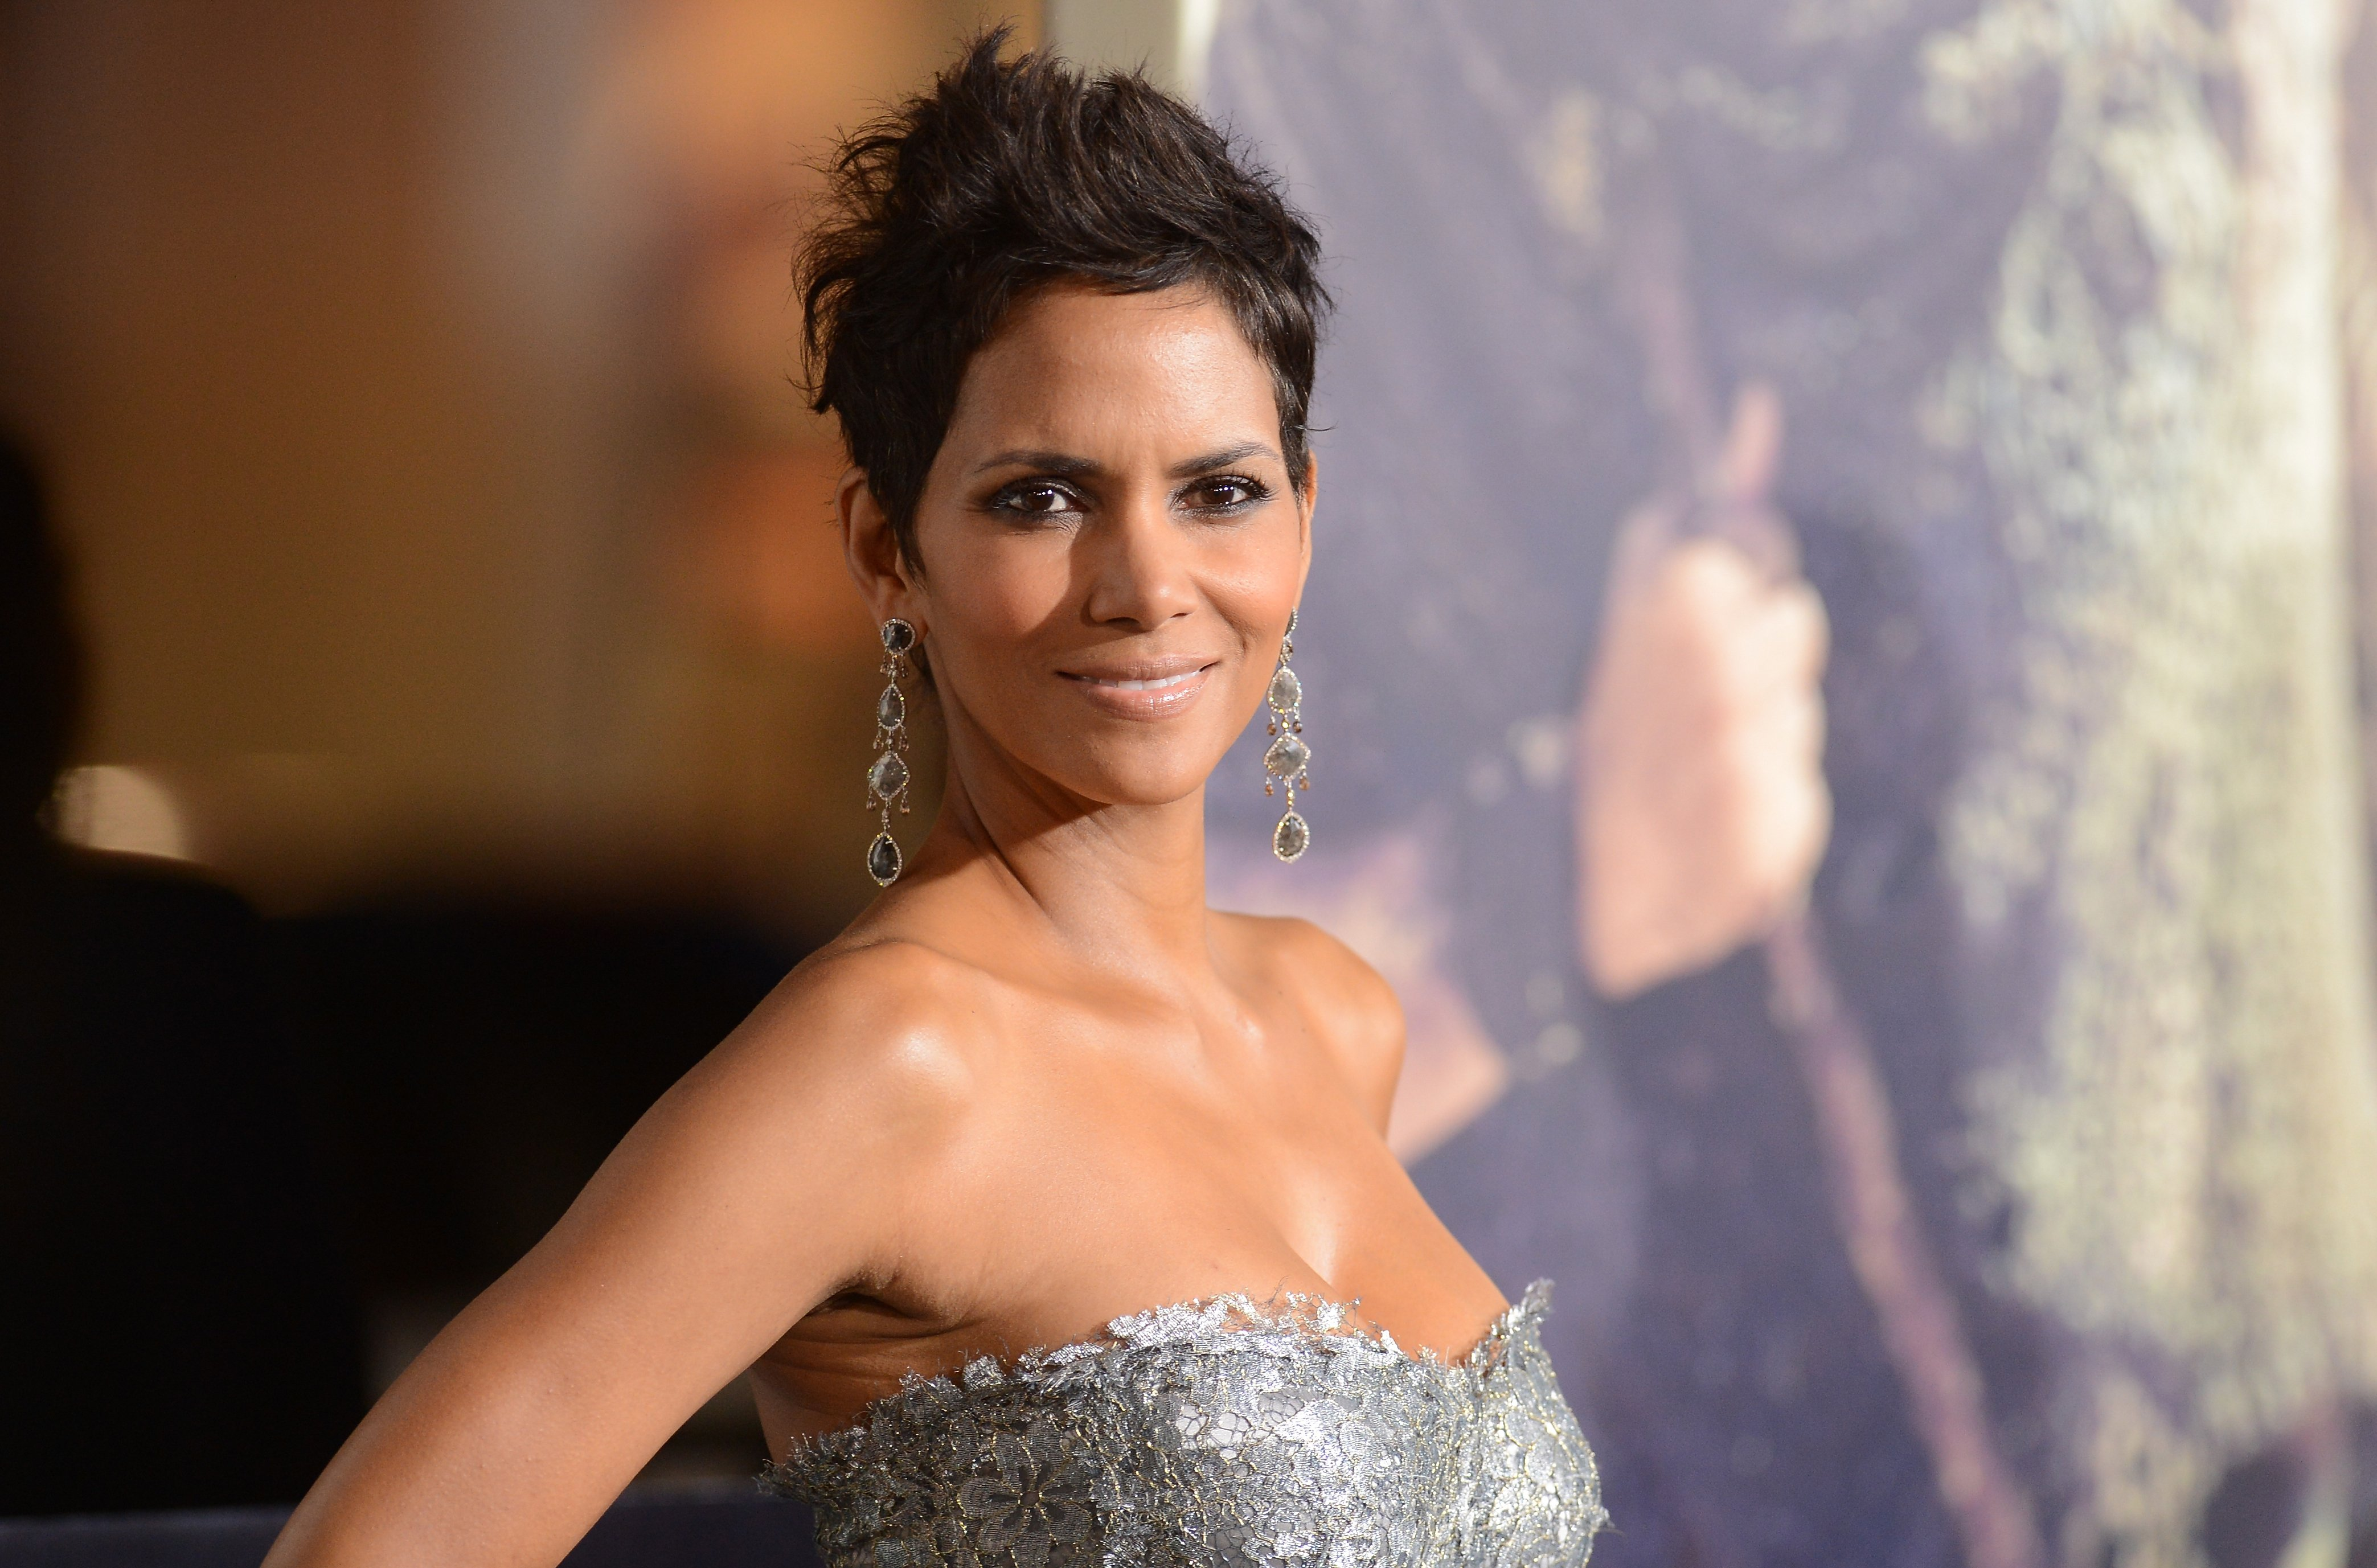 Image Source: Getty Images | Halle Berry in a red carpet event